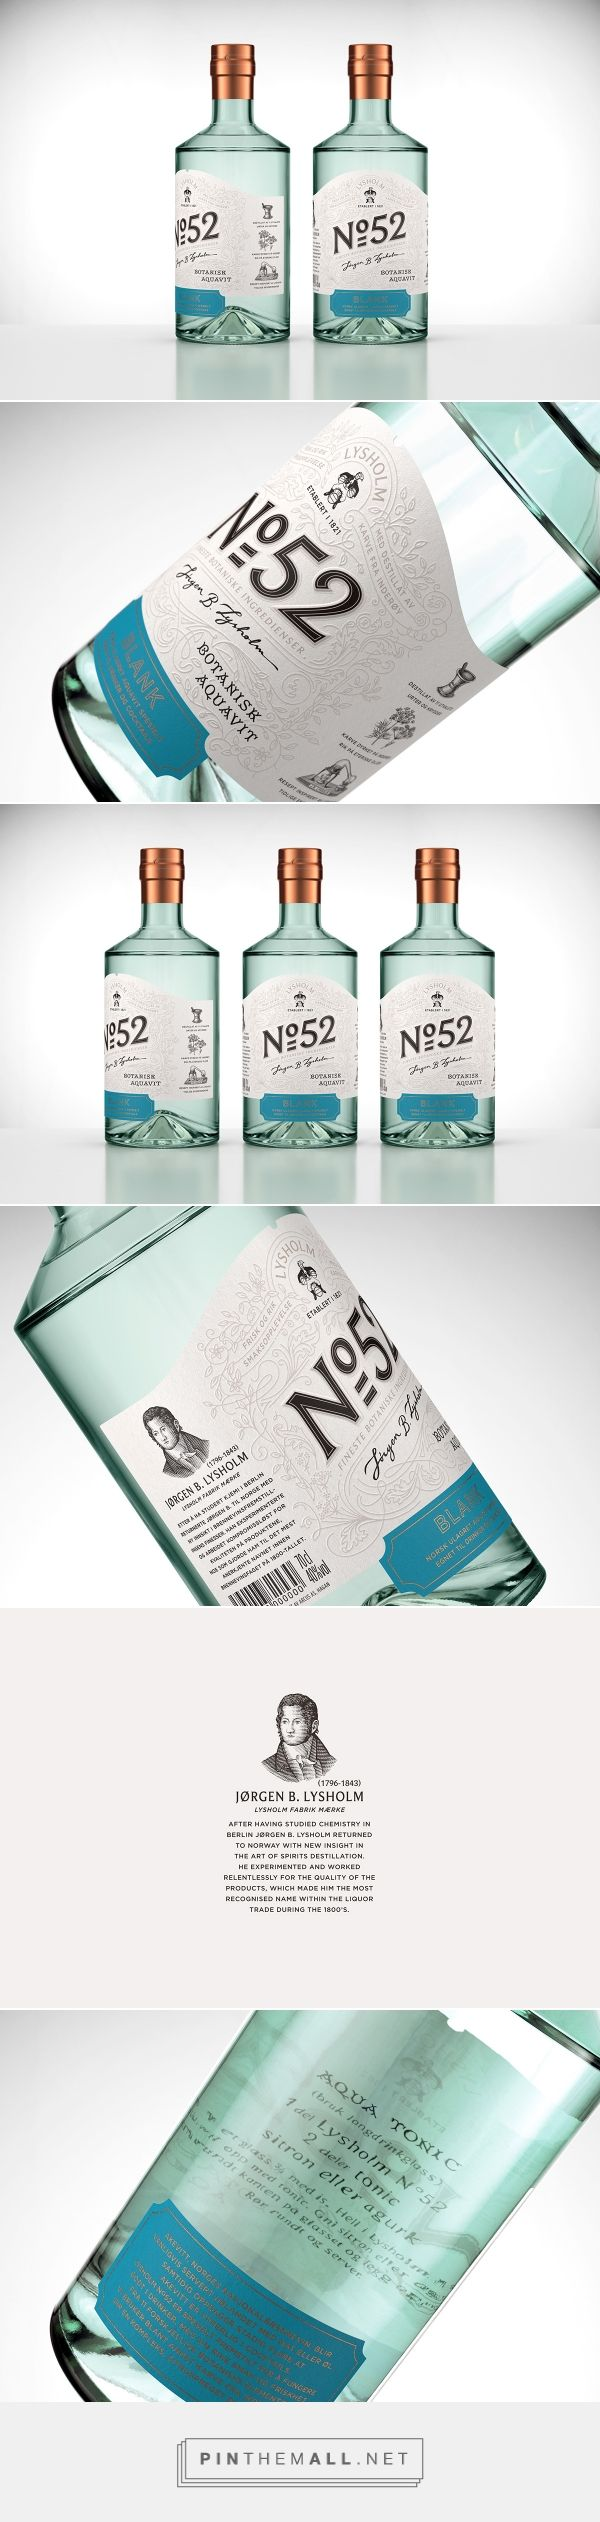 Art direction, branding and packaging for Lysholm N52 Botanisk Aquavit on Behance by OlssønBarbieri Oslo, Norway curated by Packaging Diva PD. Named after an original recovered recipe developed especially for cocktails with 11 different botanical elements.